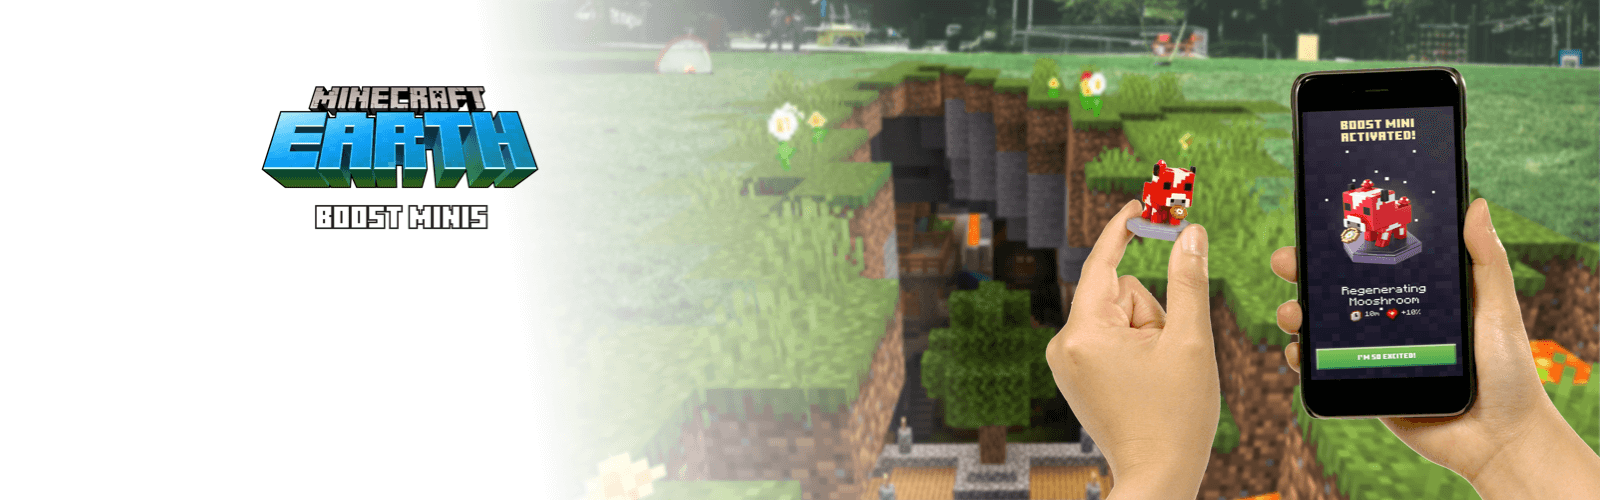 Minecraft background image with Minecraft boost minis promo banner